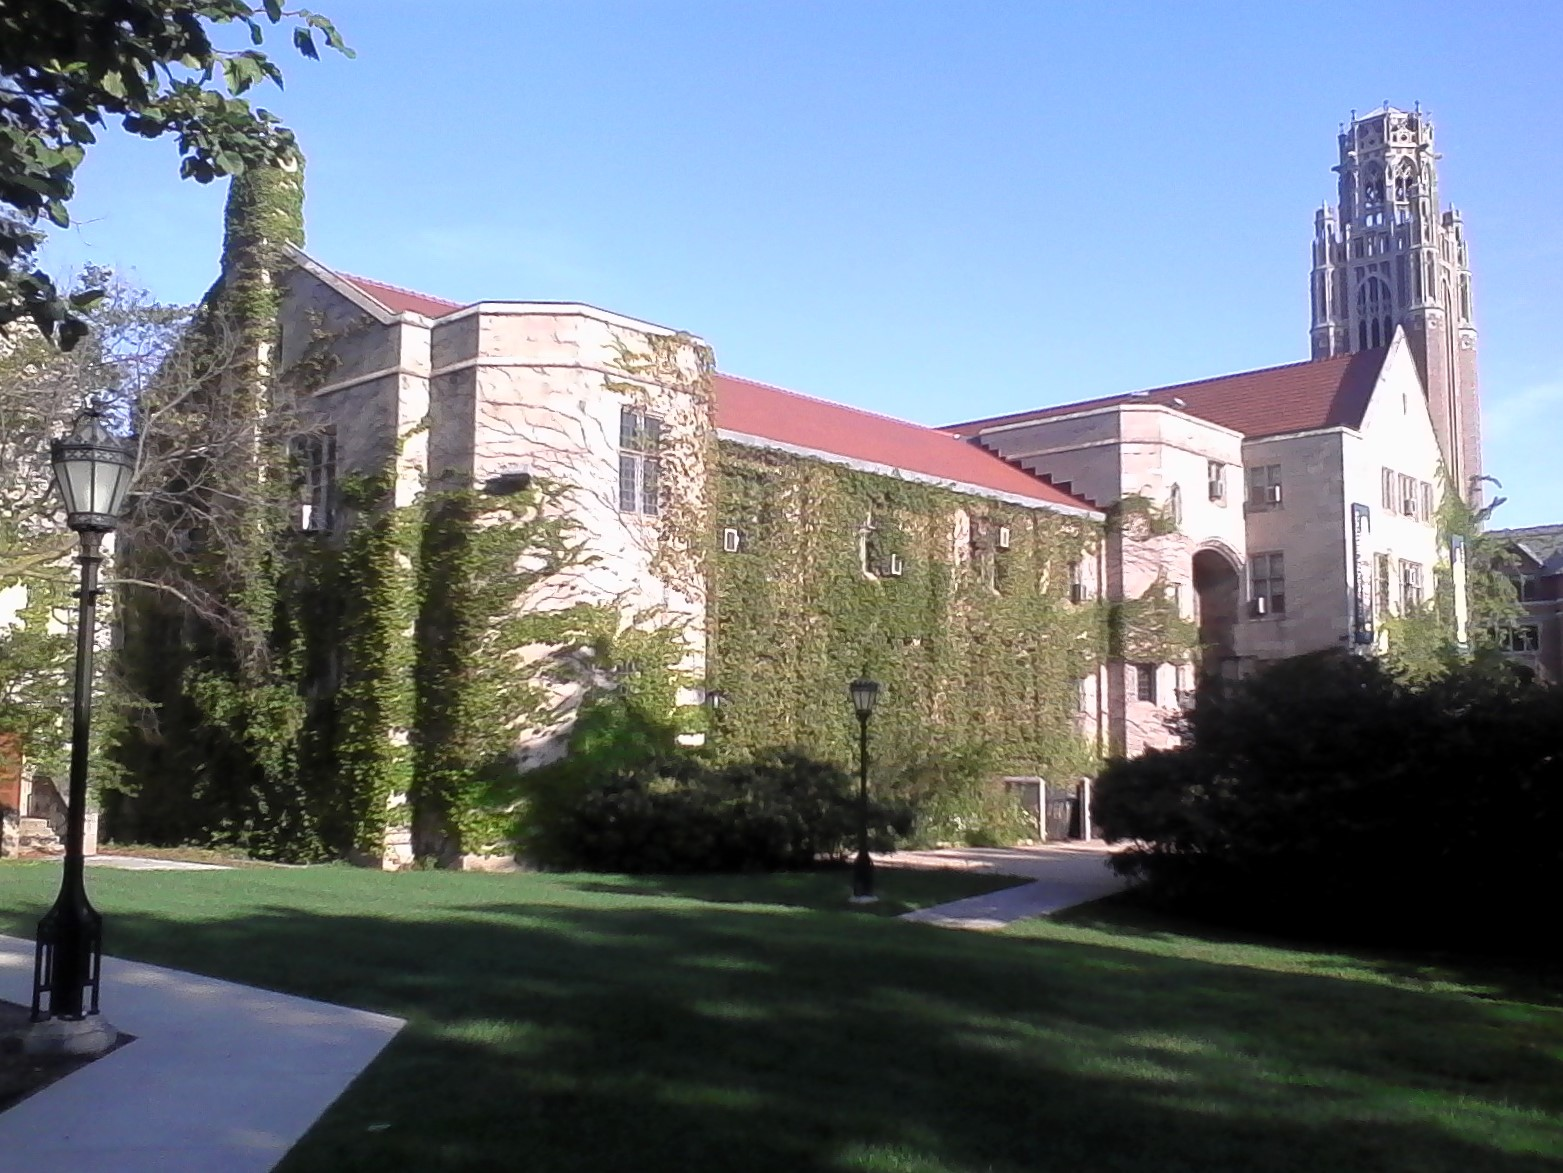 The Oriental Institute was founded in 1919 and is one of the world's best institutions dedicated to studying the Middle East.